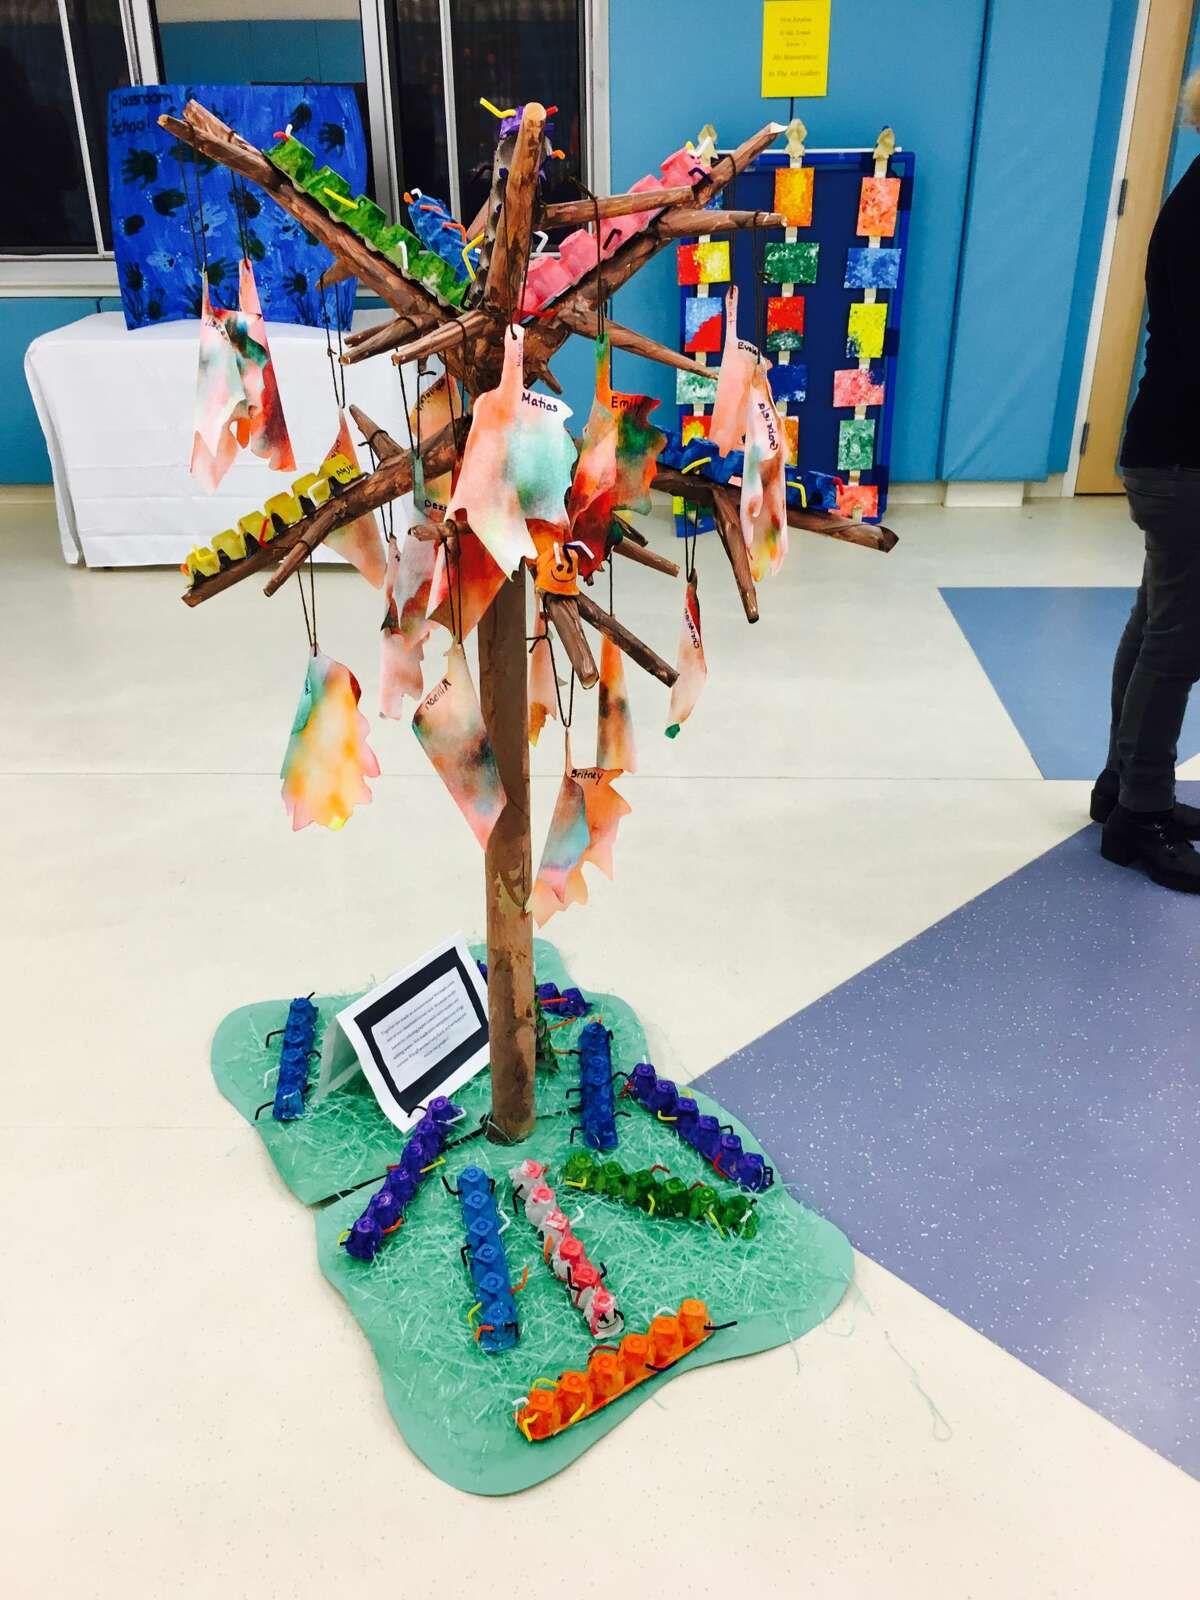 Head Start in Danbury held its first art show on Wednesday, Dec. 7, 2016. Pictured is 'The Color of Autumn,' the winning project, created by Ms. Dempsey's, Ms. Kristen's, and Ms. Aylin's class.